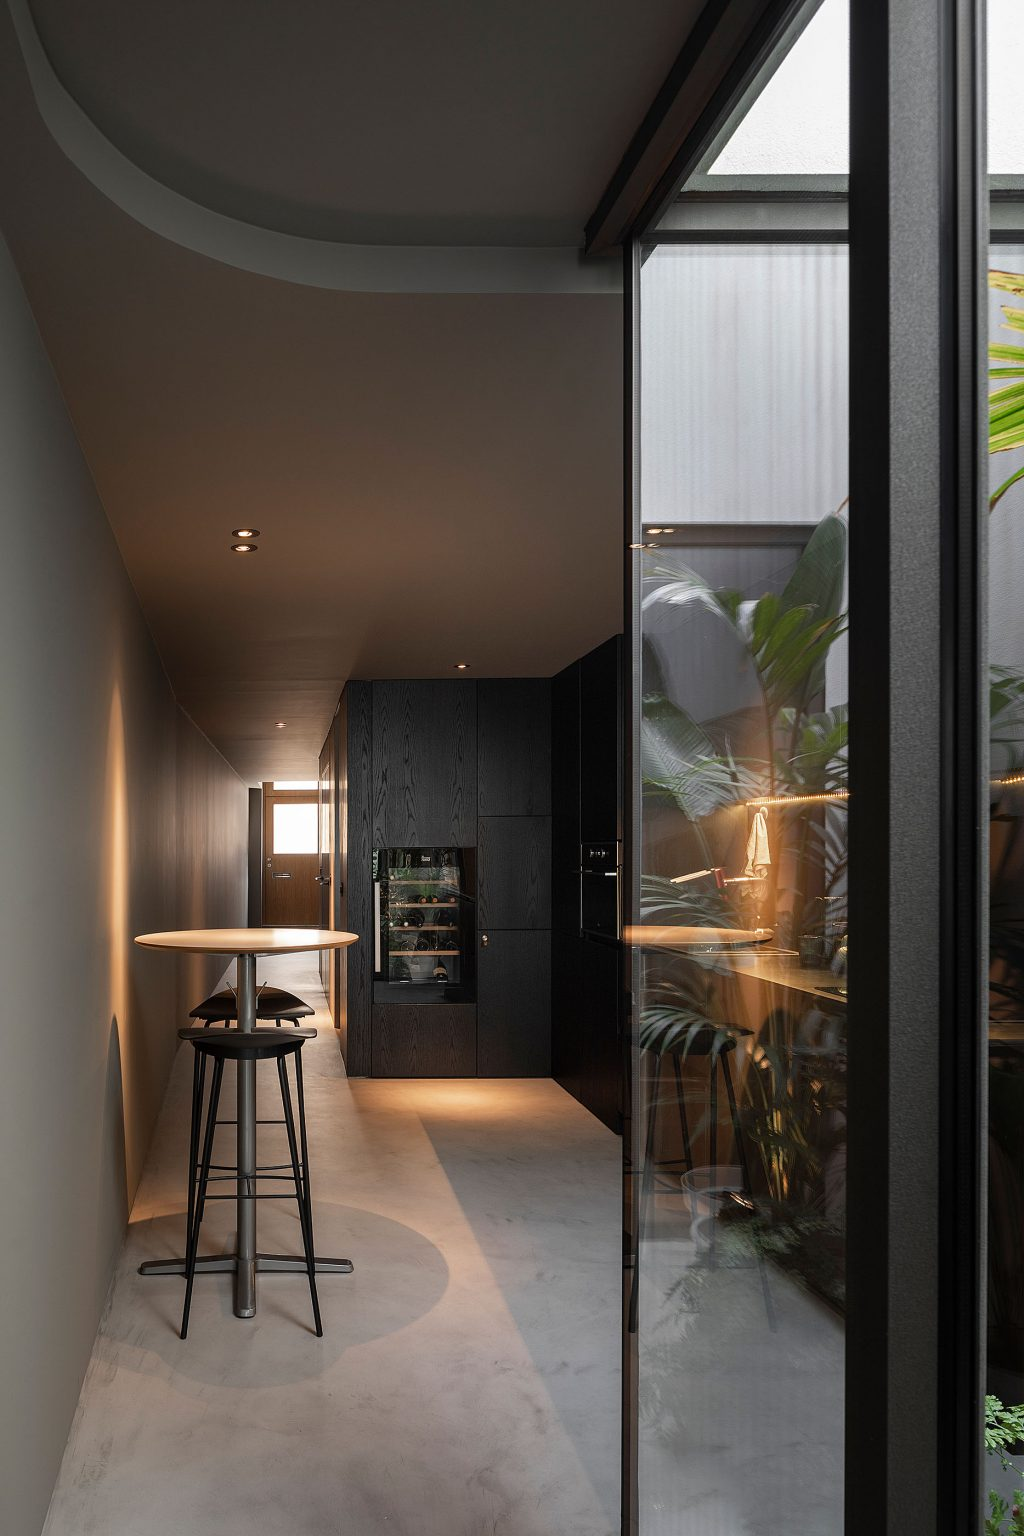 Renovation of a long and narrow house in Beira Mar - Paulo Martin ARQ & DESIGN